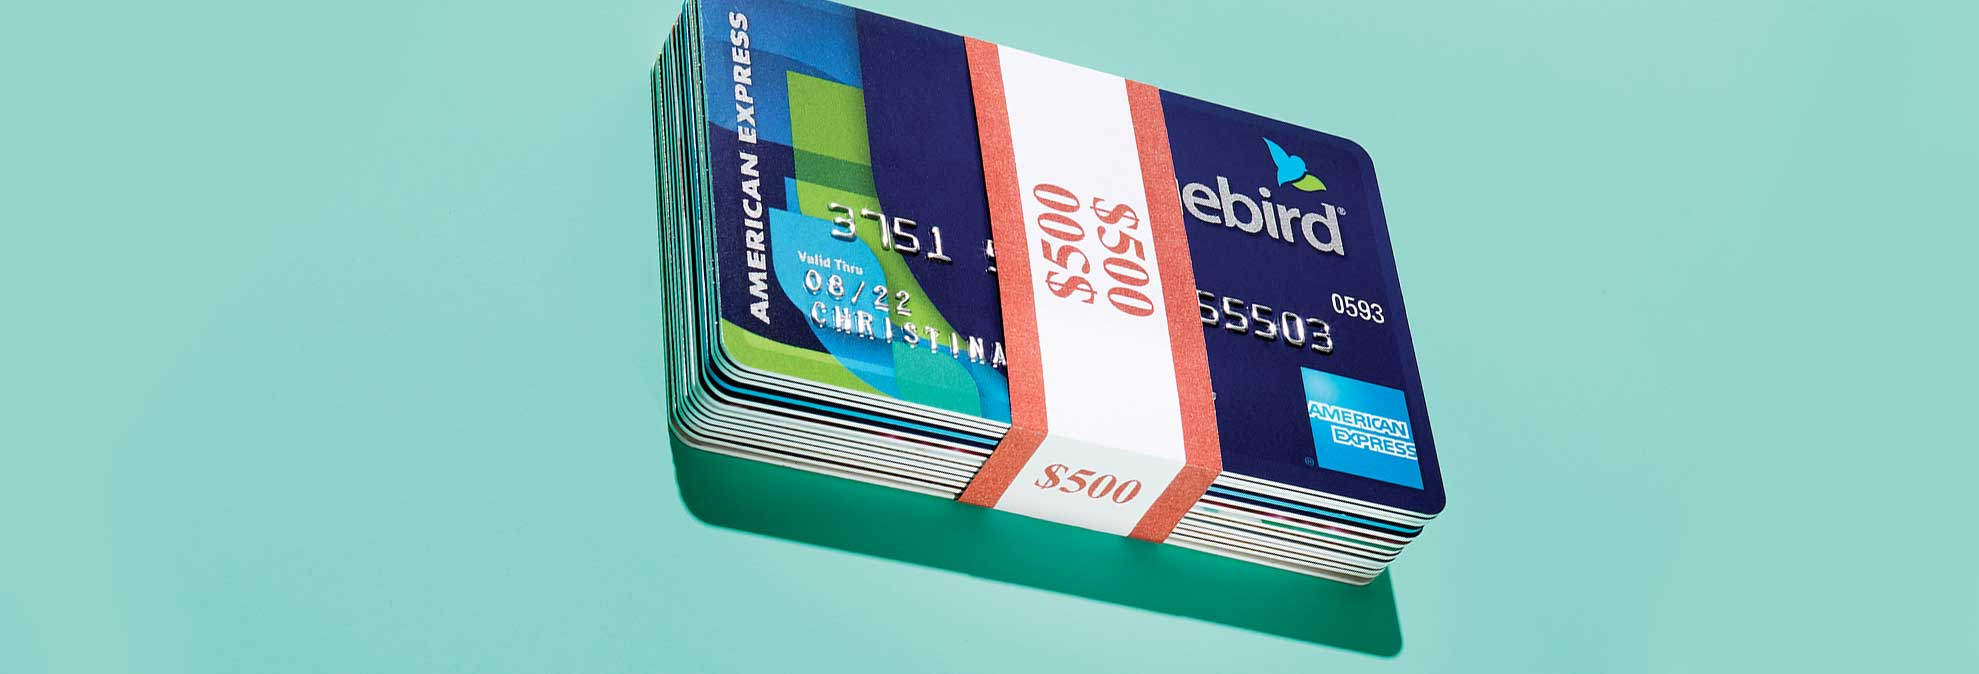 prepaid cards are a smart way to pay with plastic consumer reports - Rent A Car With Prepaid Card